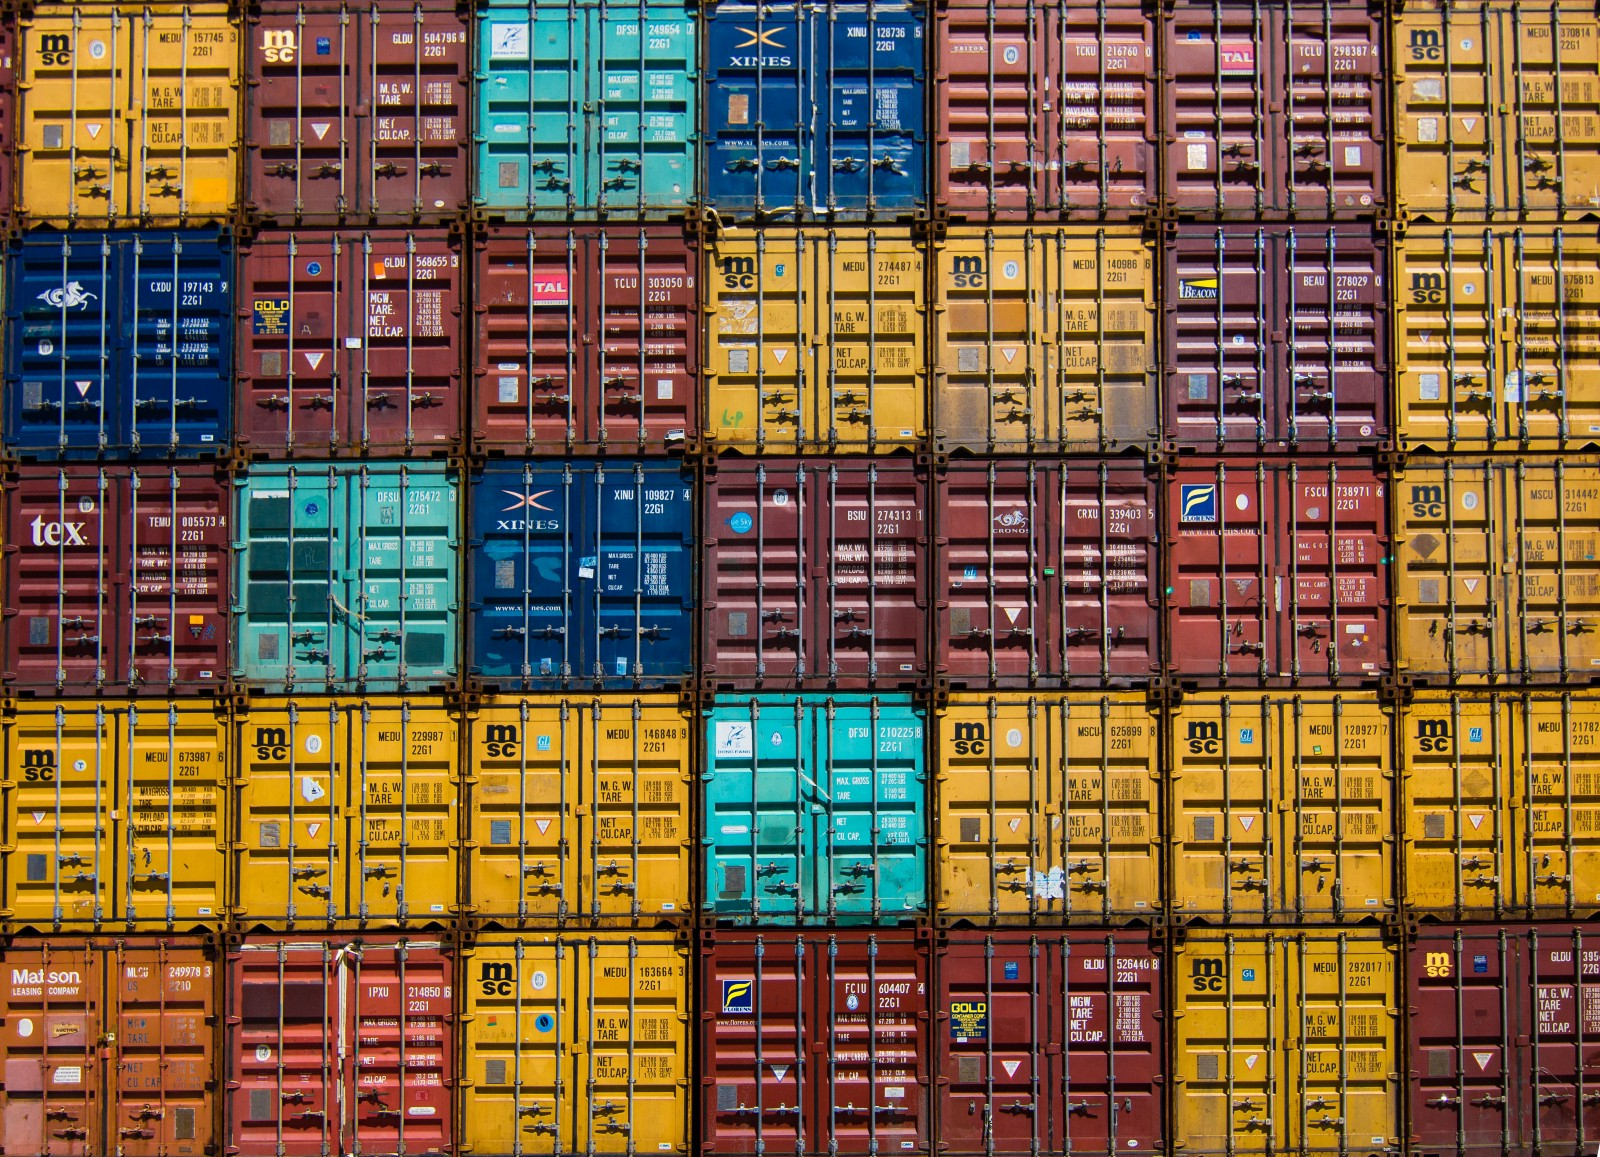 /docker-commands-the-ultimate-cheat-sheet-994ac78e2888 feature image